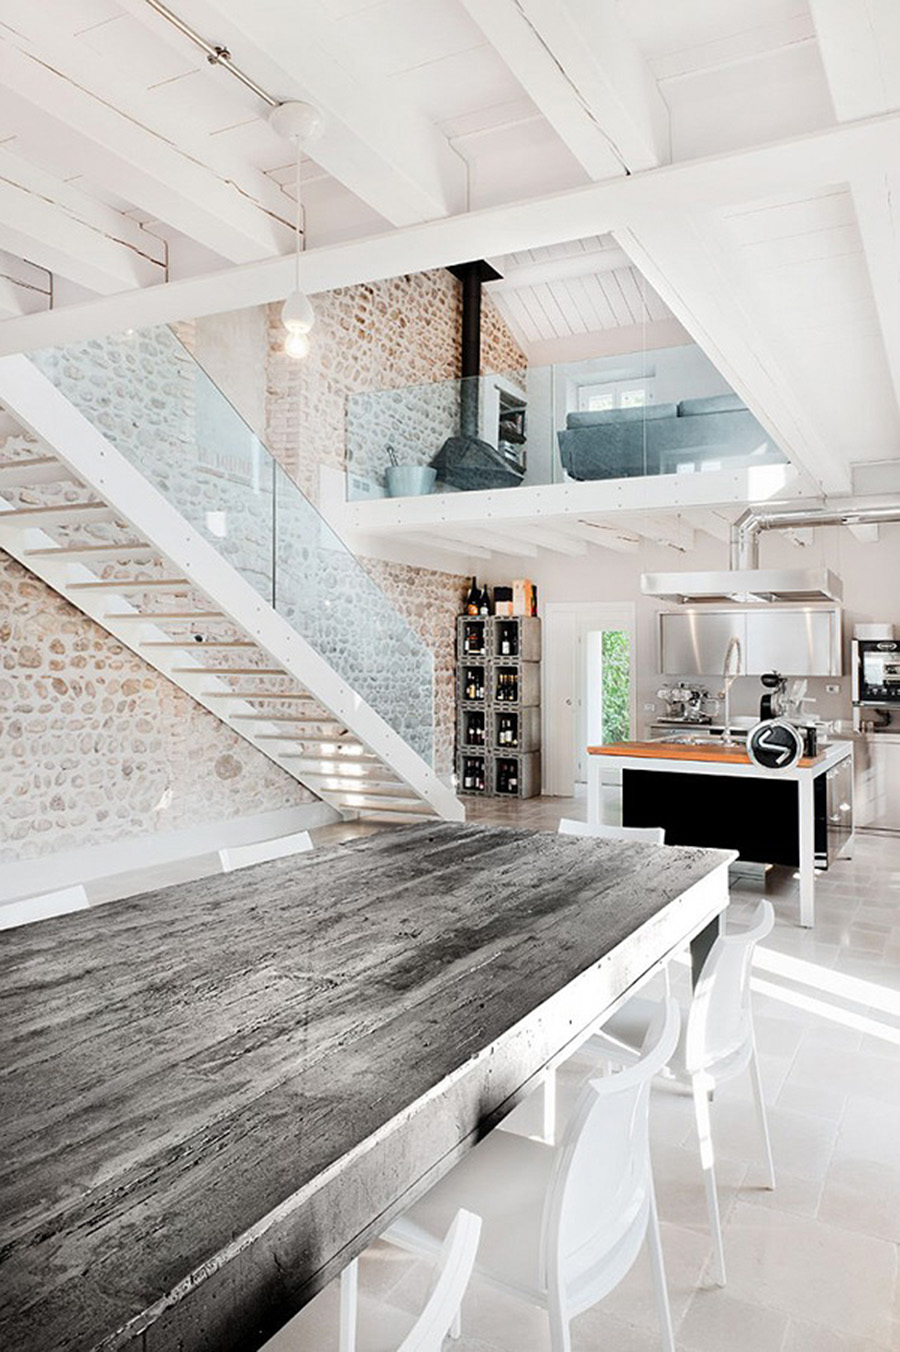 Home Inspiration Italian Villa With An Industrial